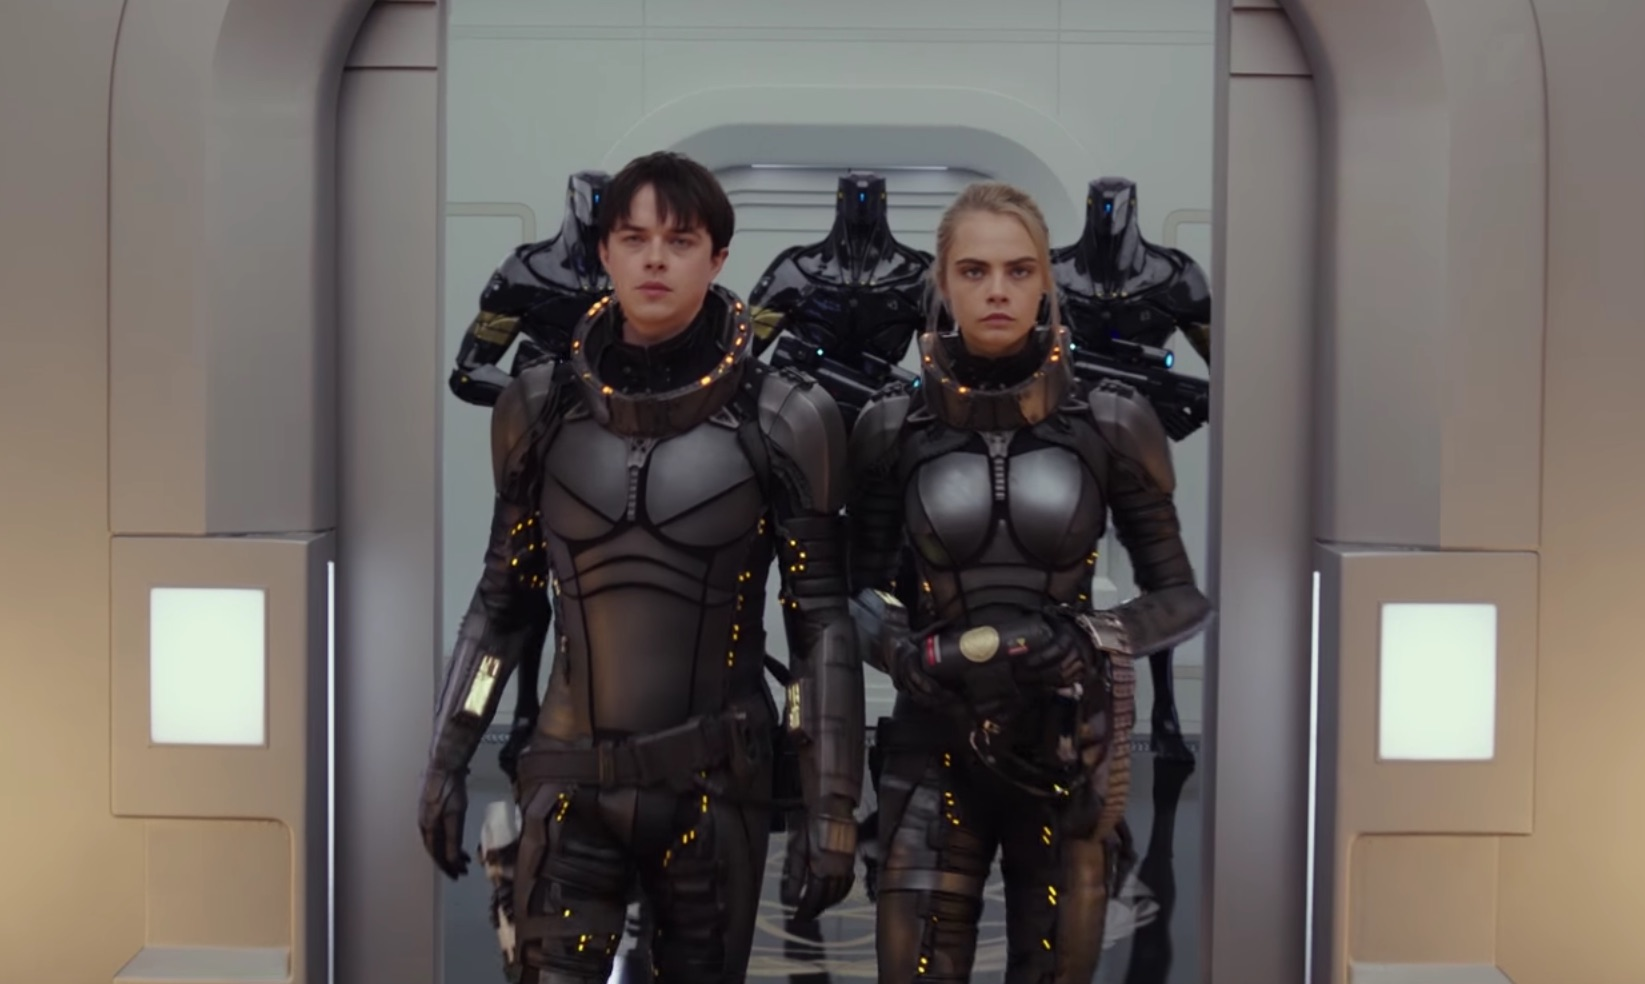 Valerian (Dane DeHaan) and Laureline (Cara Delevingne) in Valerian and the City of a Thousand Planets (2017)